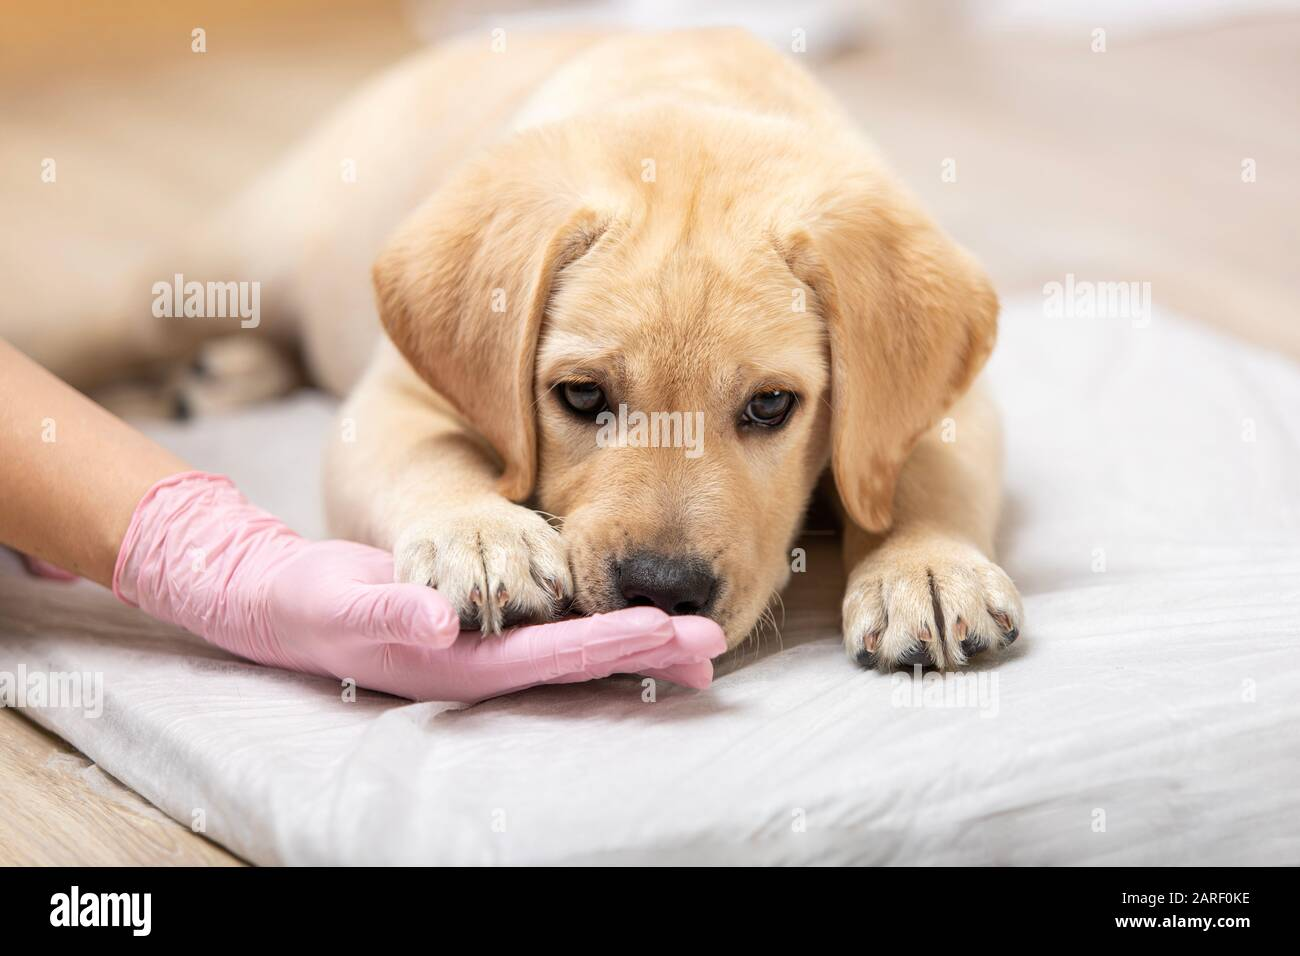 Puppy Love Dog Groomer High Resolution Stock Photography And Images Alamy